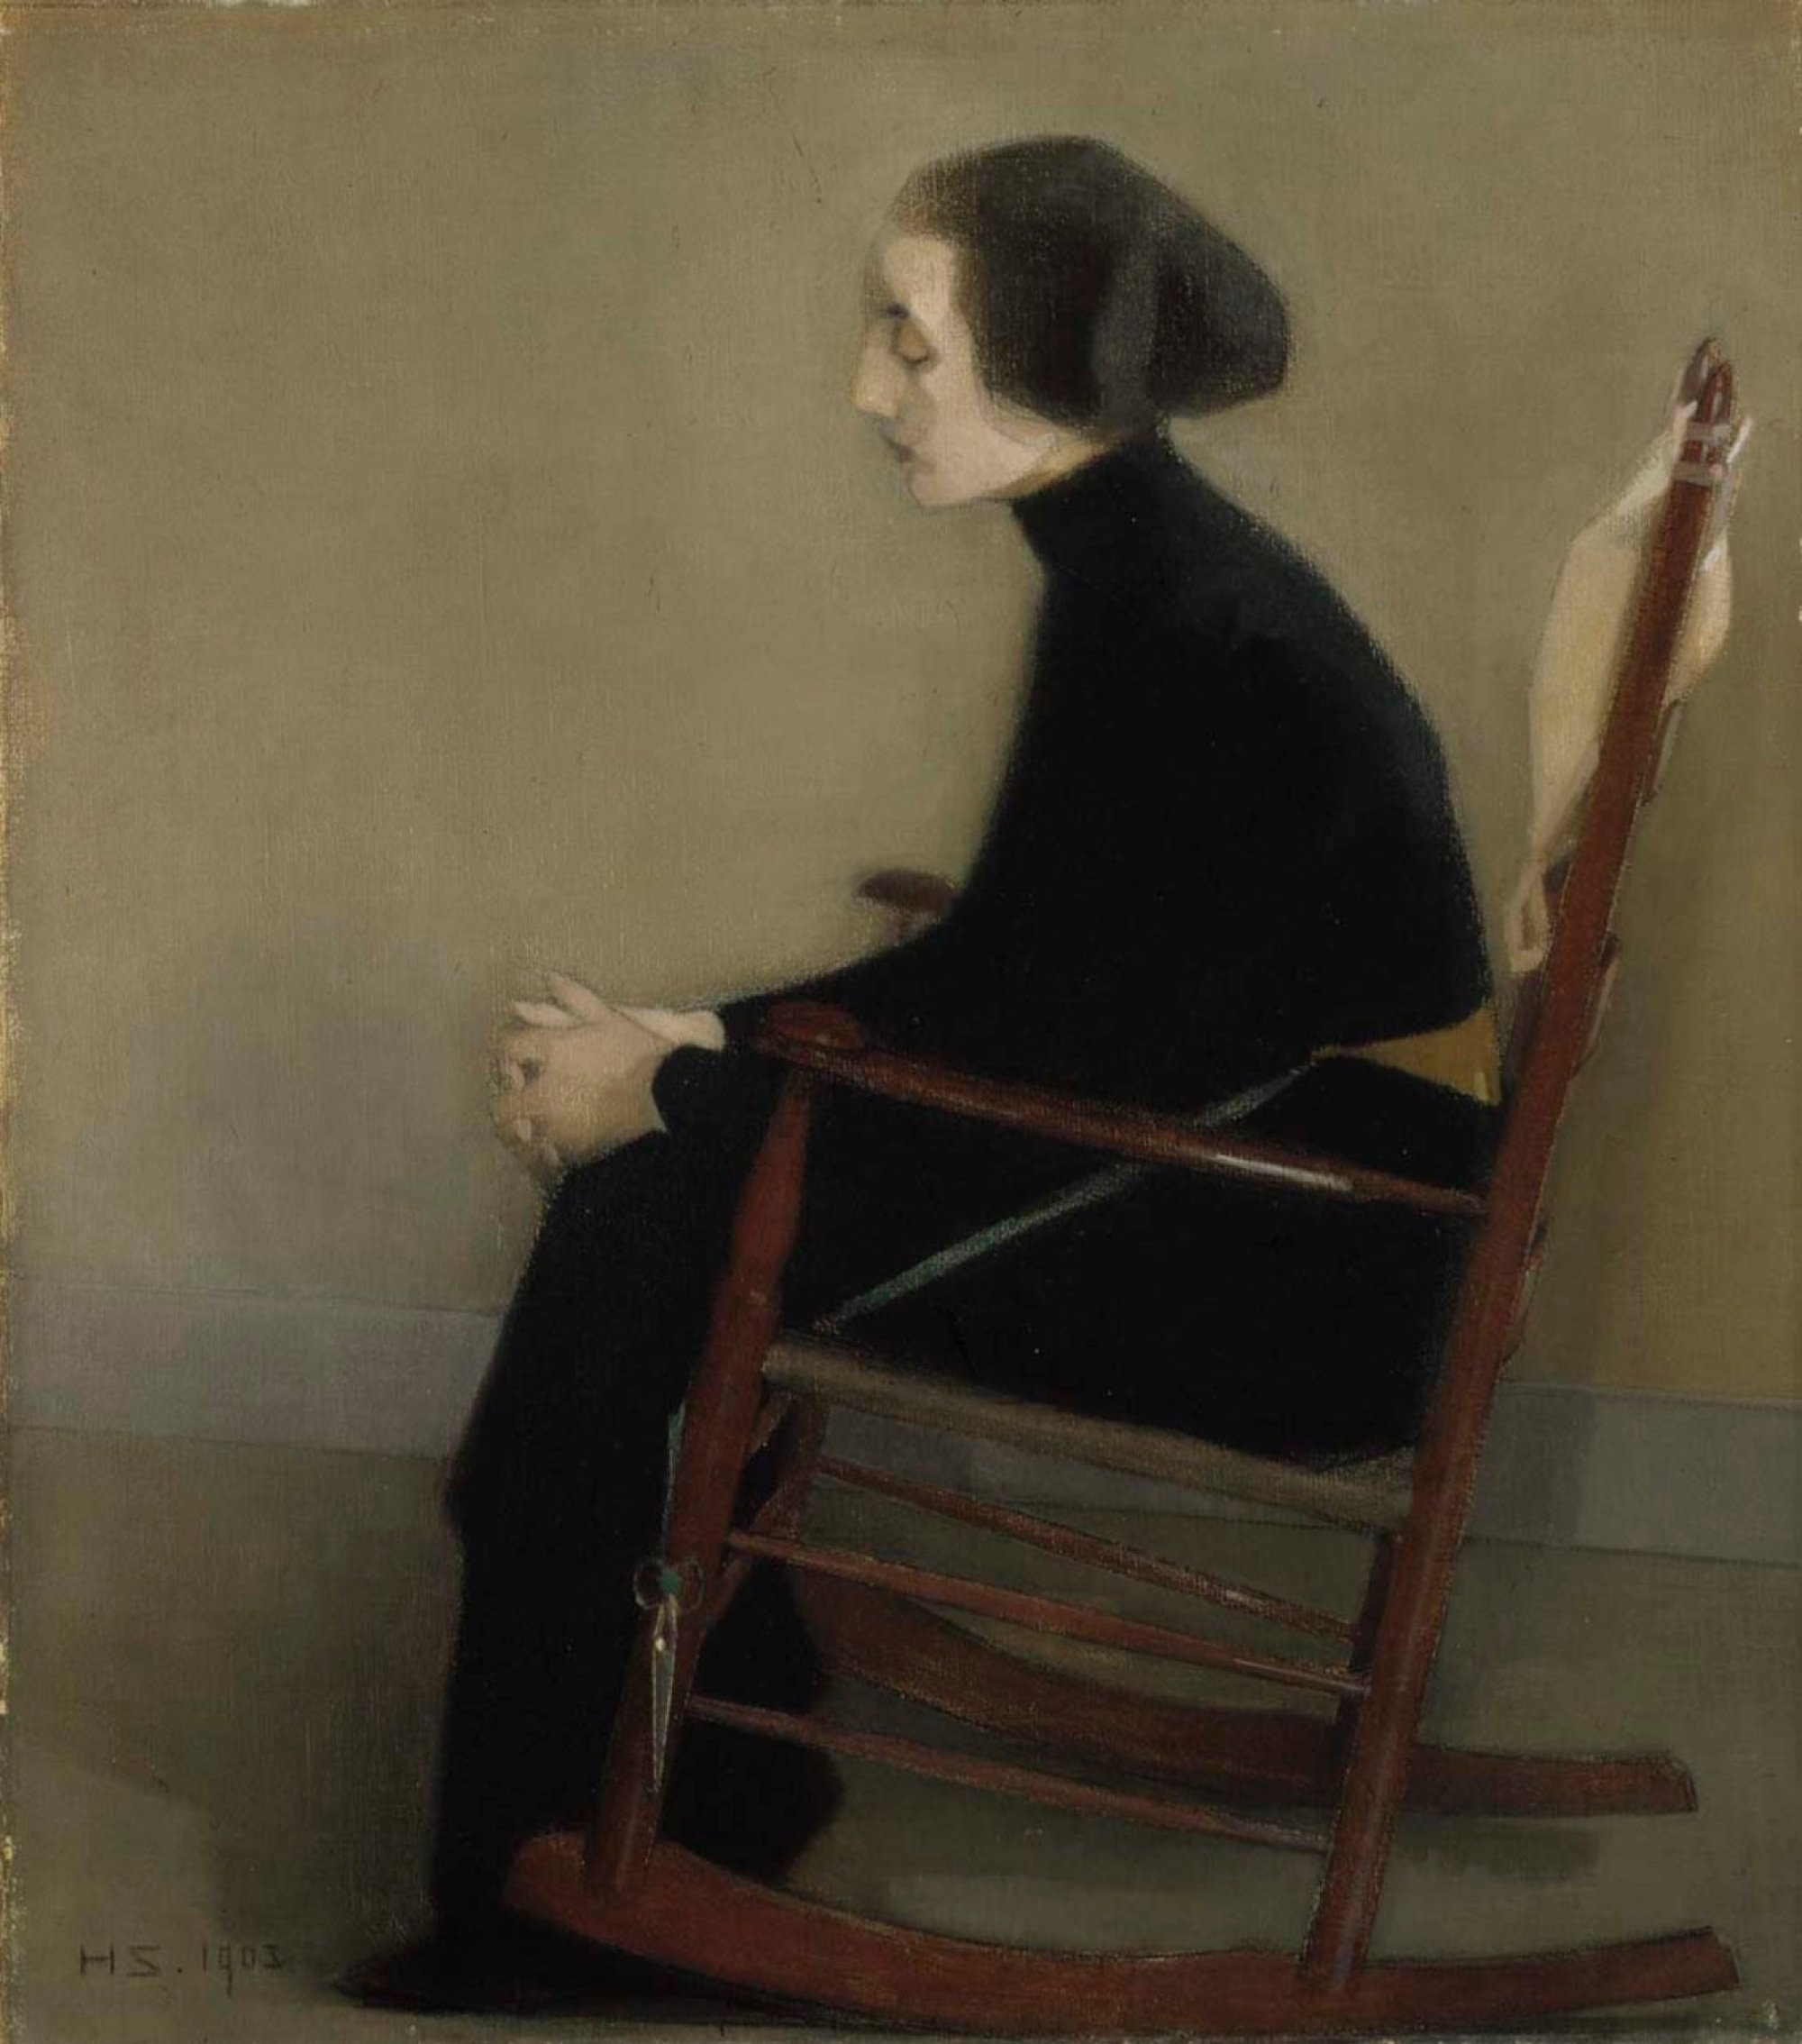 The Seamstress (The Working Woman), Helene Schjerfbeck Finnish National Gallery, 1905